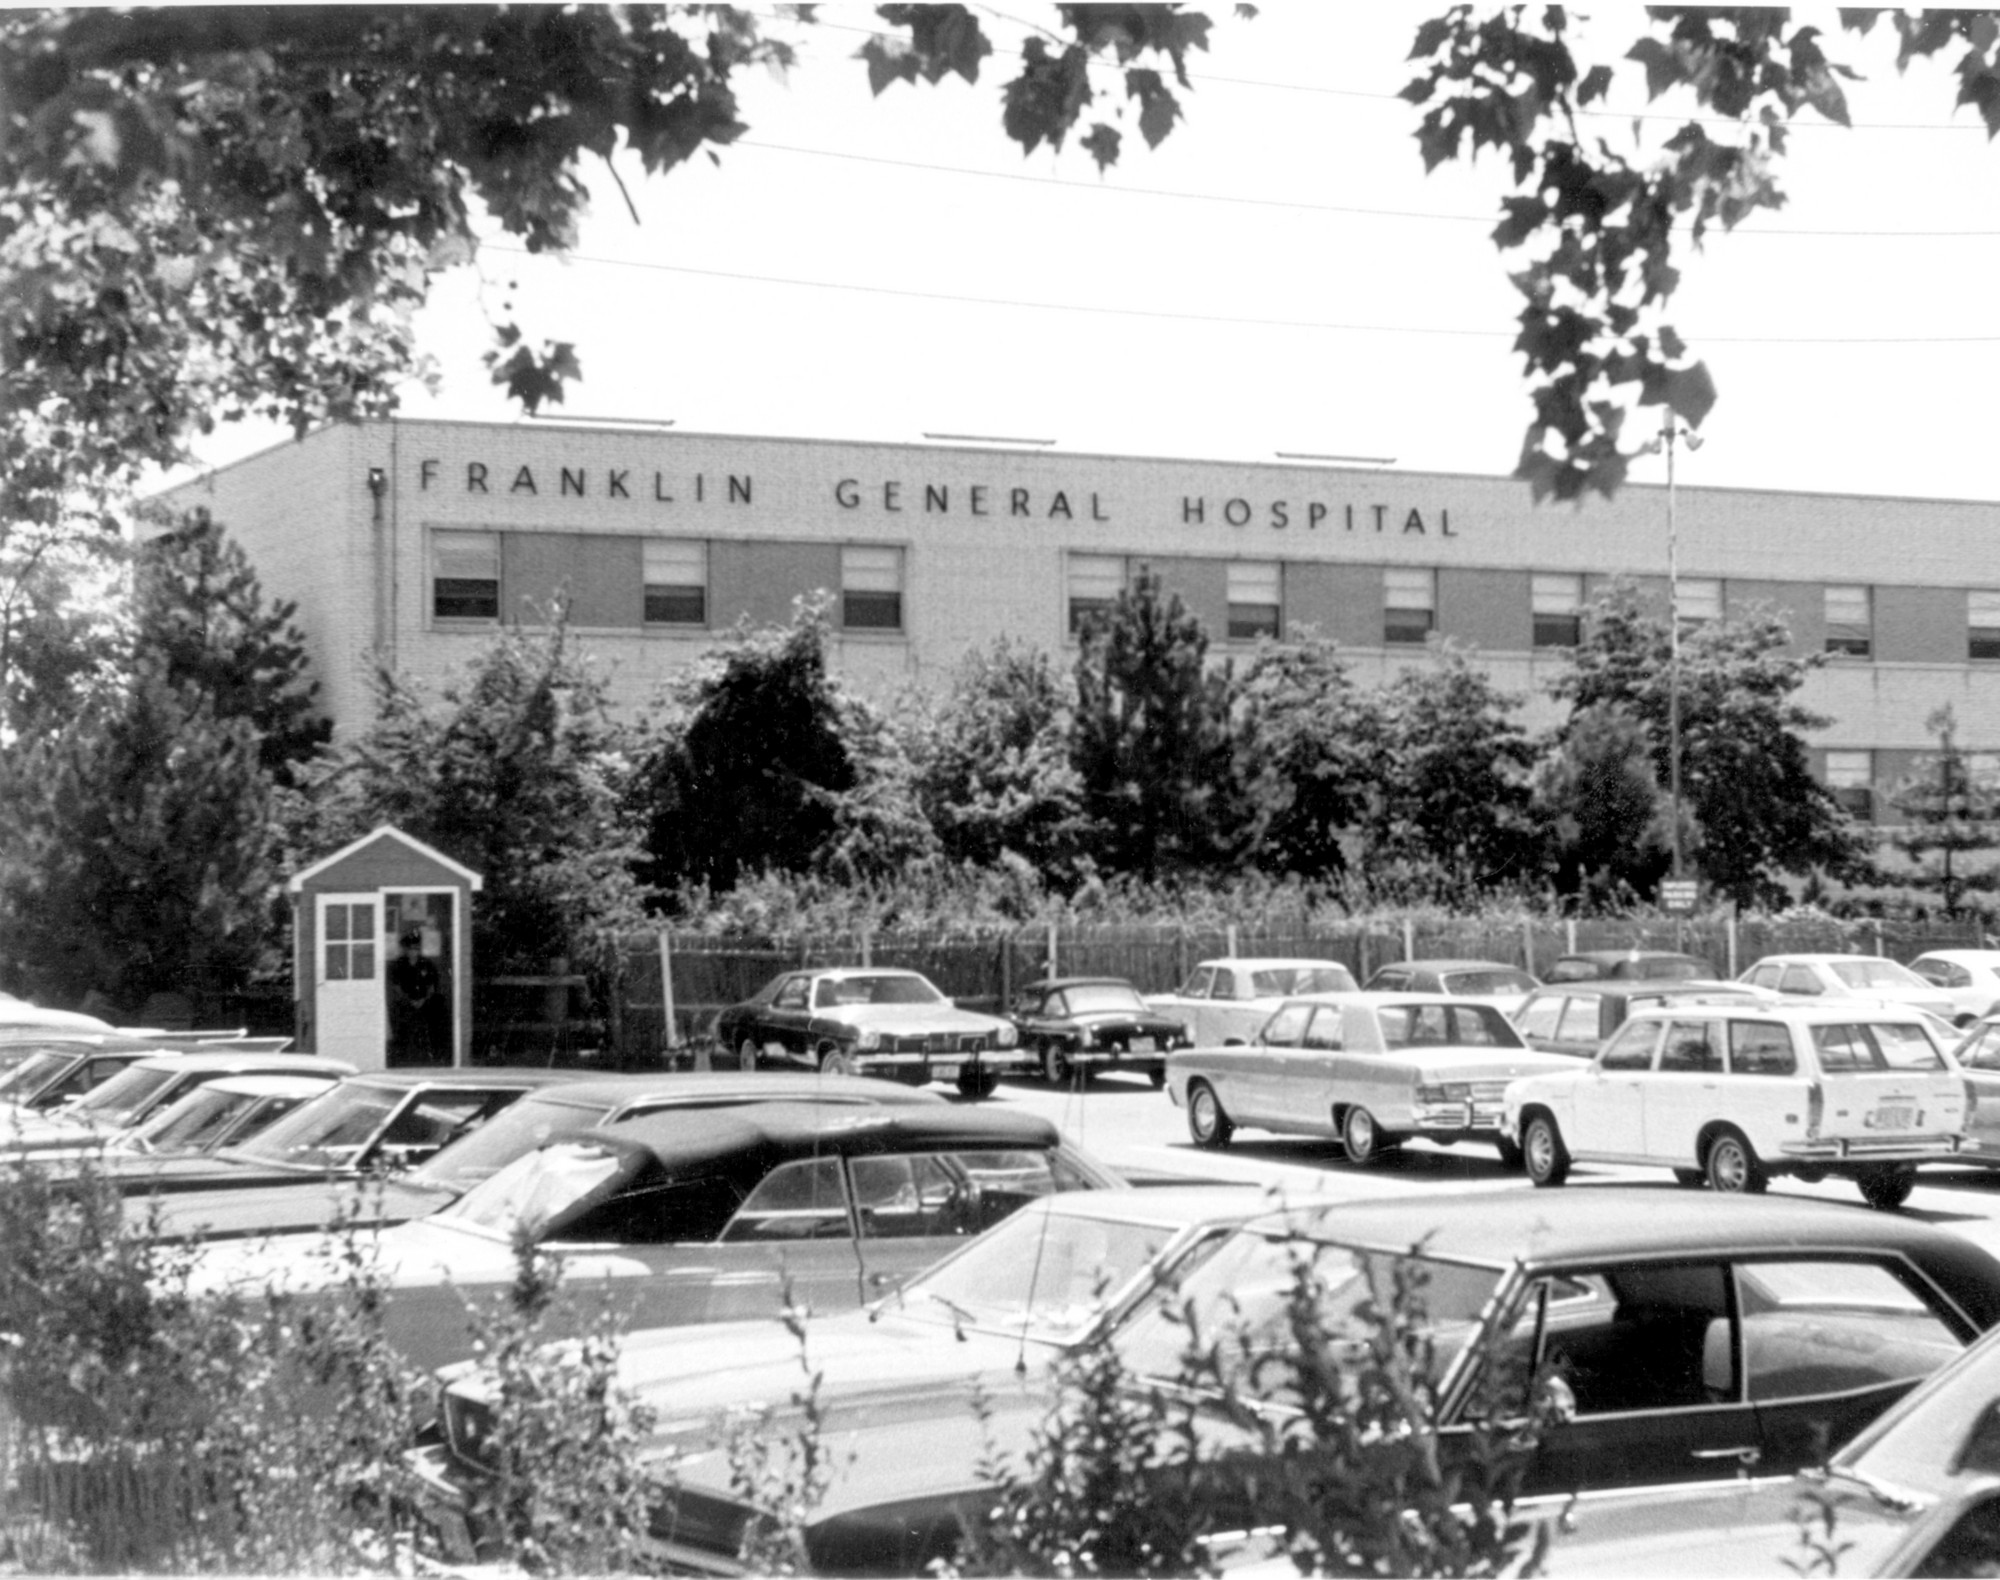 Franklin Hospital opened its doors on April 1, 1963.